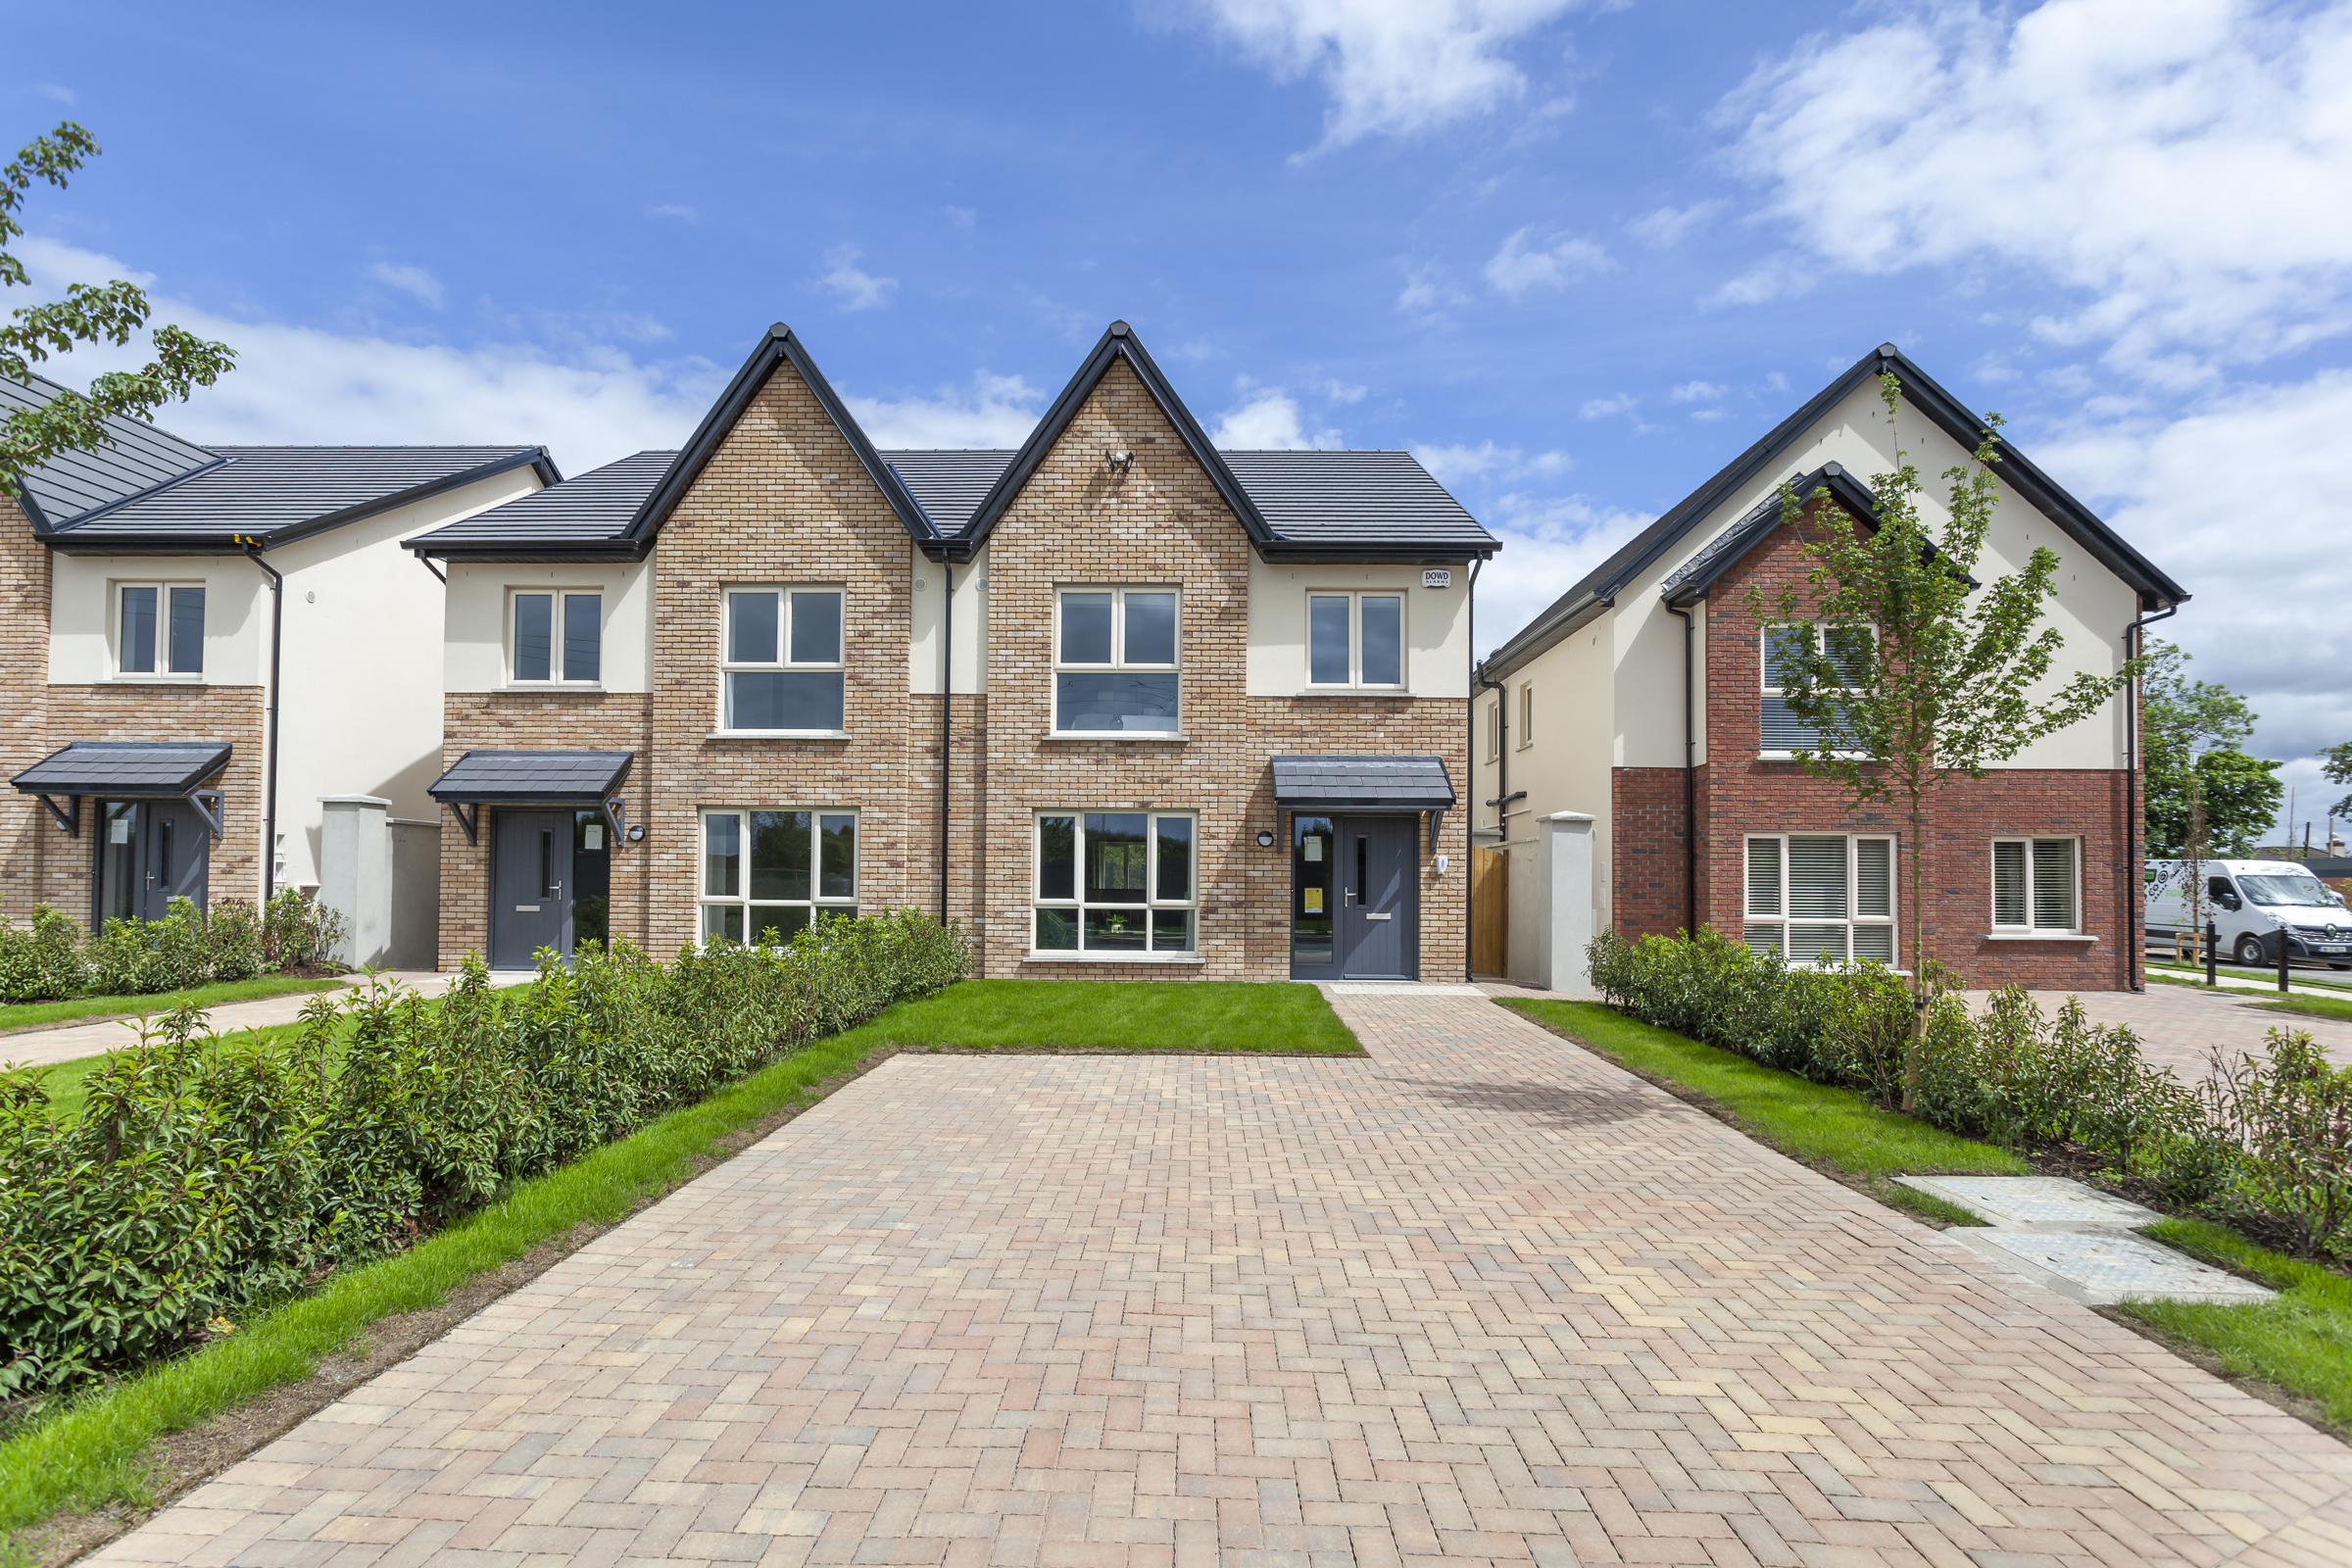 new houses for sale kildare